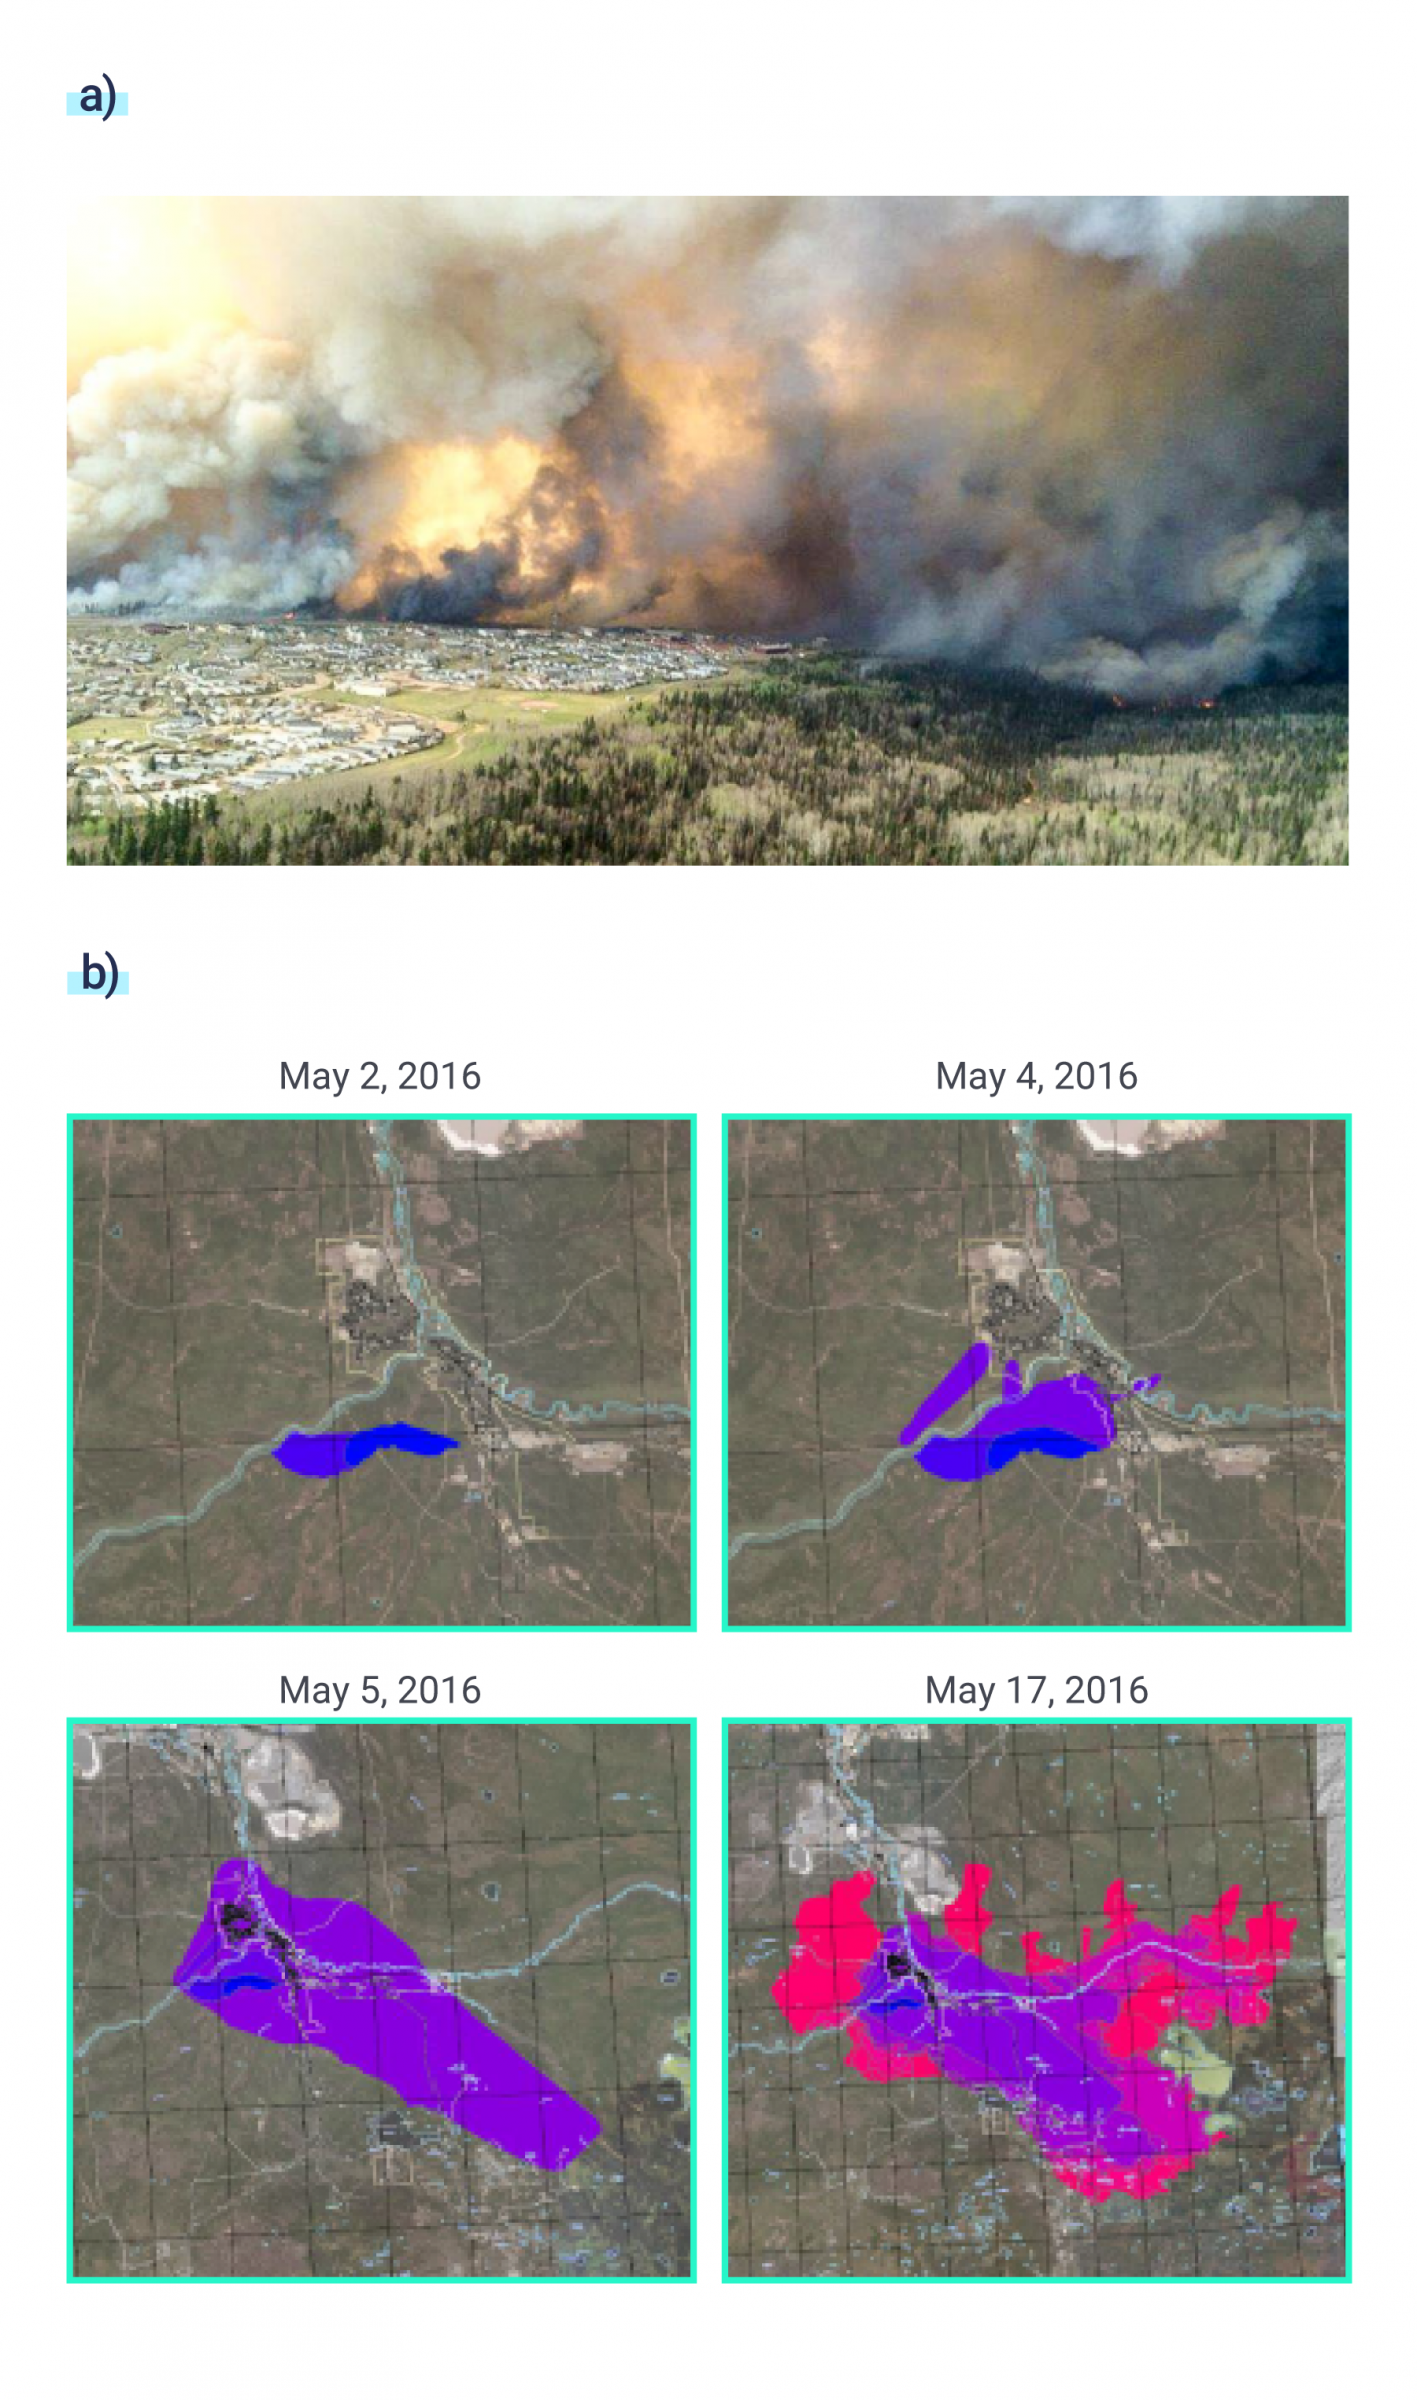 Aerial photograph showing wildfire and smoke clouds approaching the city of Fort McMurray during the 2016 Horse River wildfire. A series of four maps of the area surrounding Fort McMurray showing the spread of the Horse River wildfire between May 2 and May 14, 2016. The maps show that the wildfire began as a localized fire south-west of the city and spread to the north and east, enveloping the city and crossing several rivers.